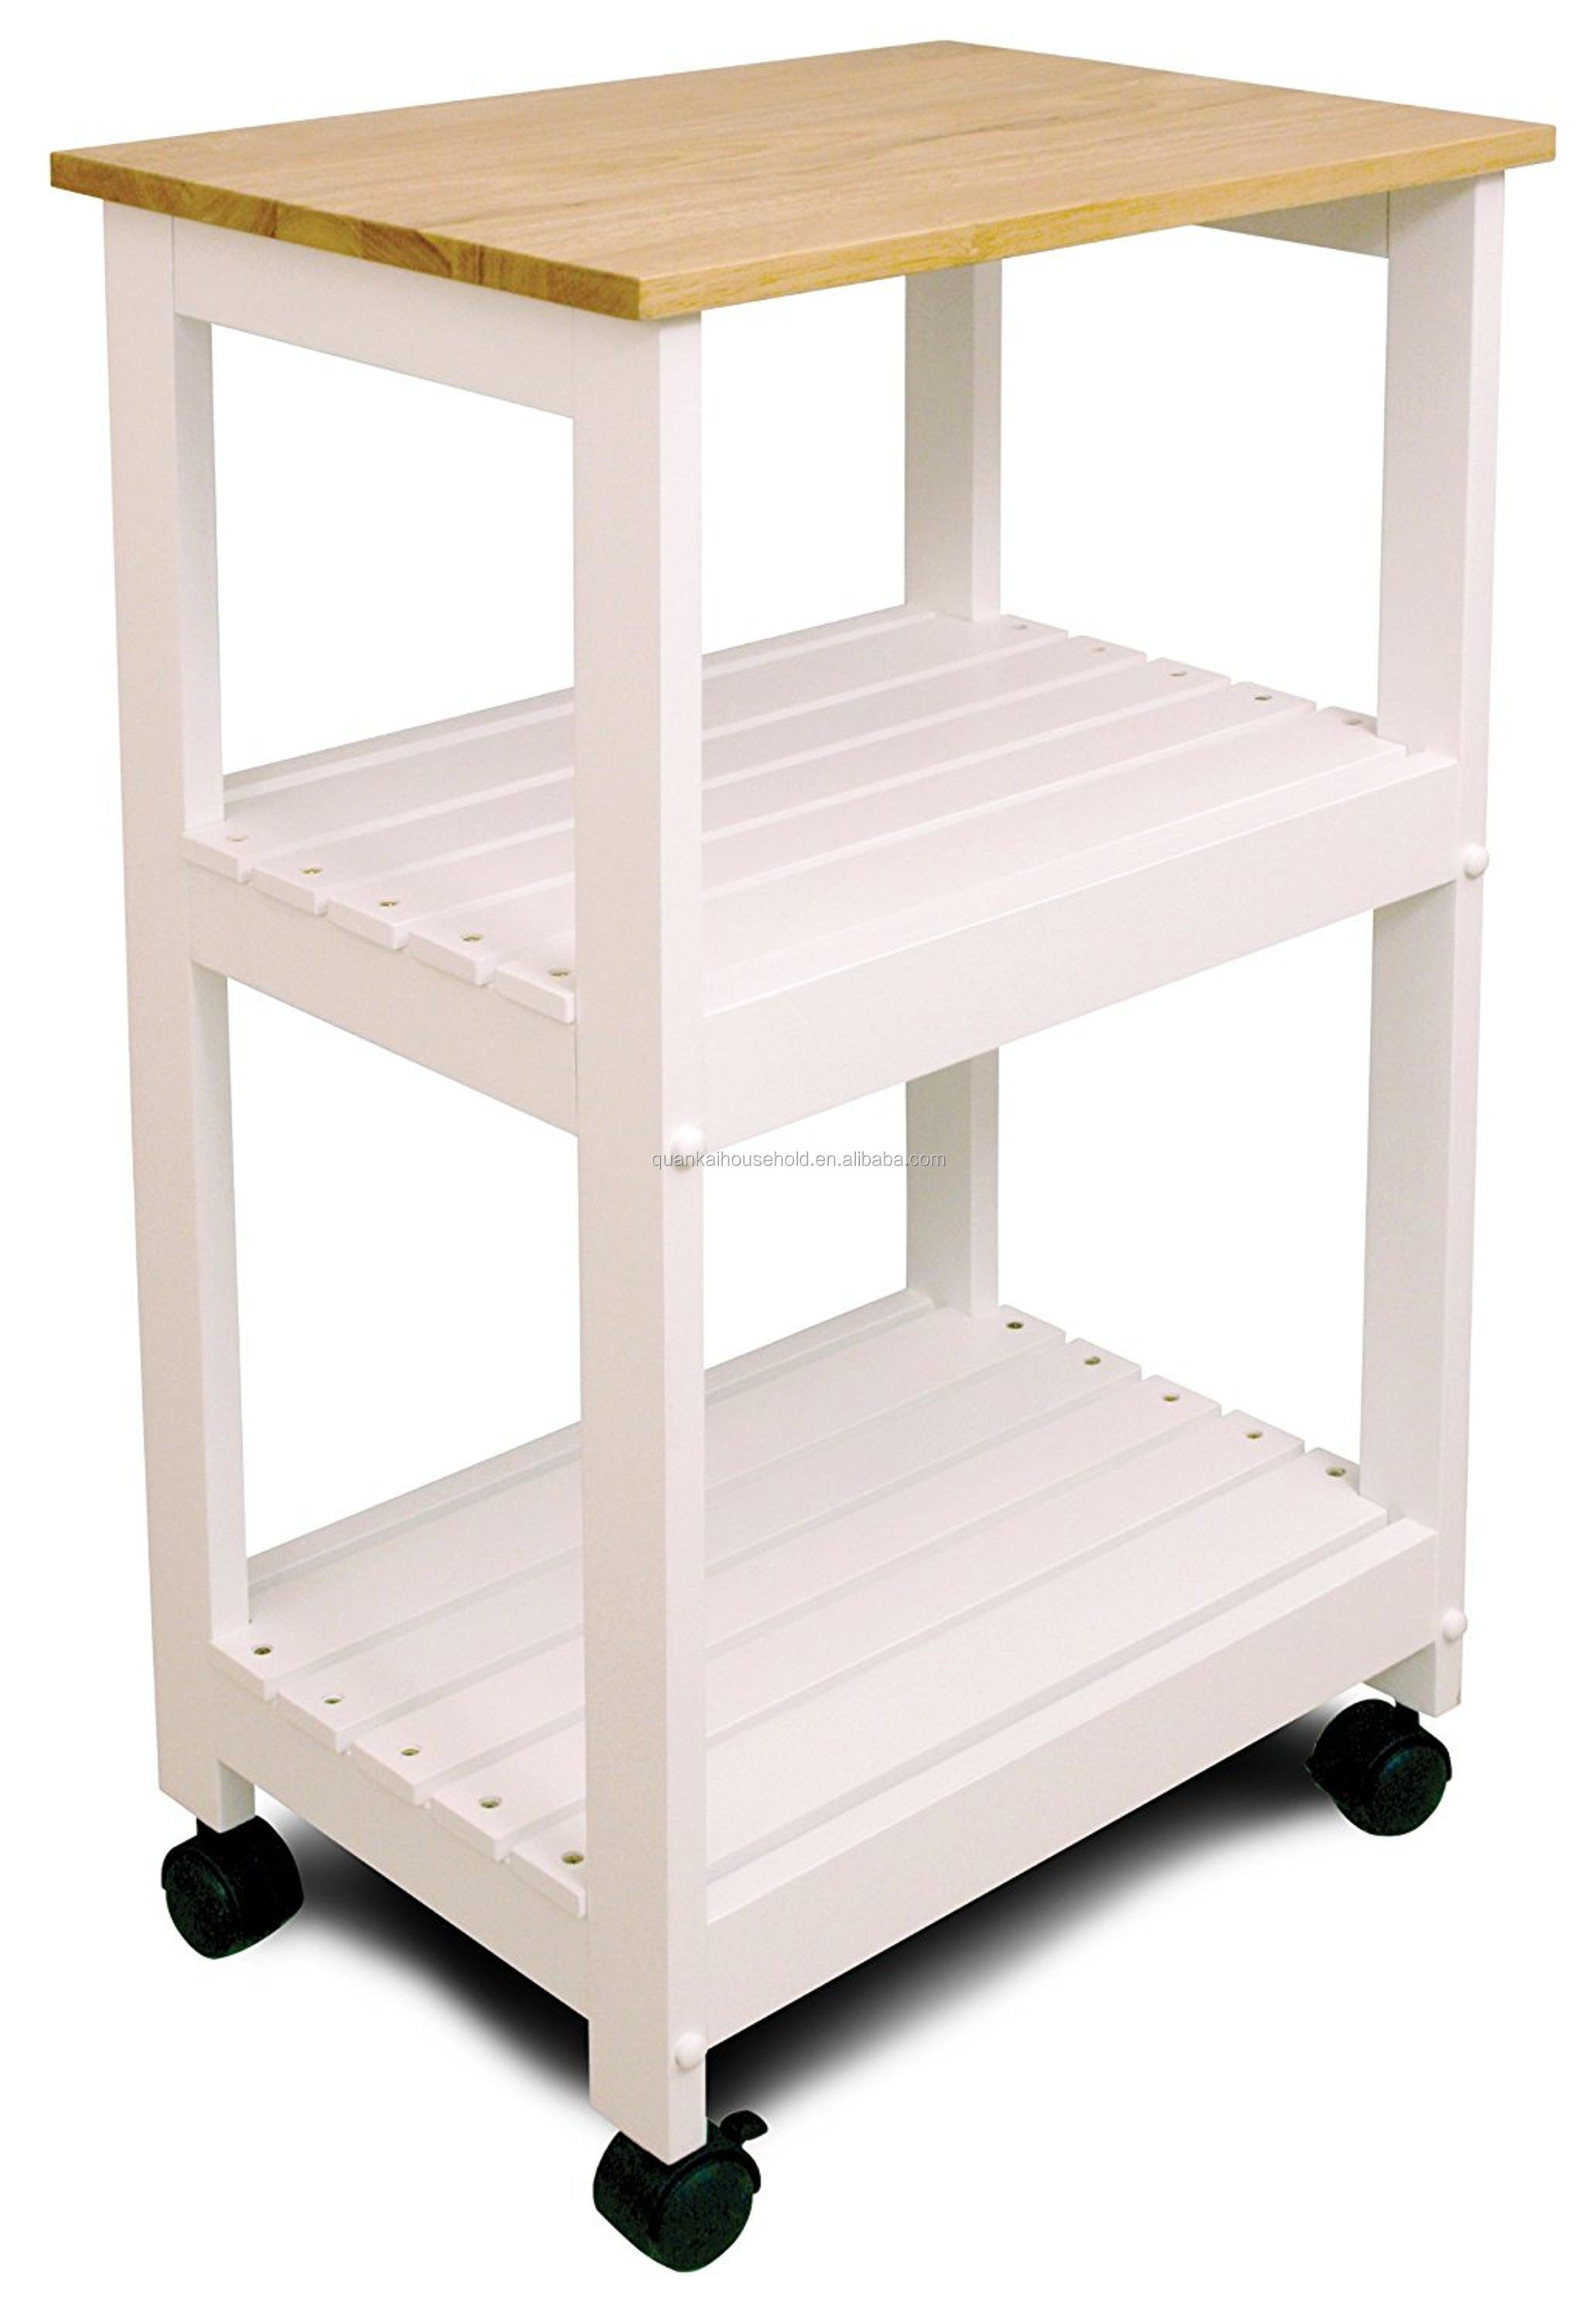 bamboo wood kitchen cart microwave stand buy bamboo kitchen trolley kitchen serving trolley cart microwave stand product on alibaba com